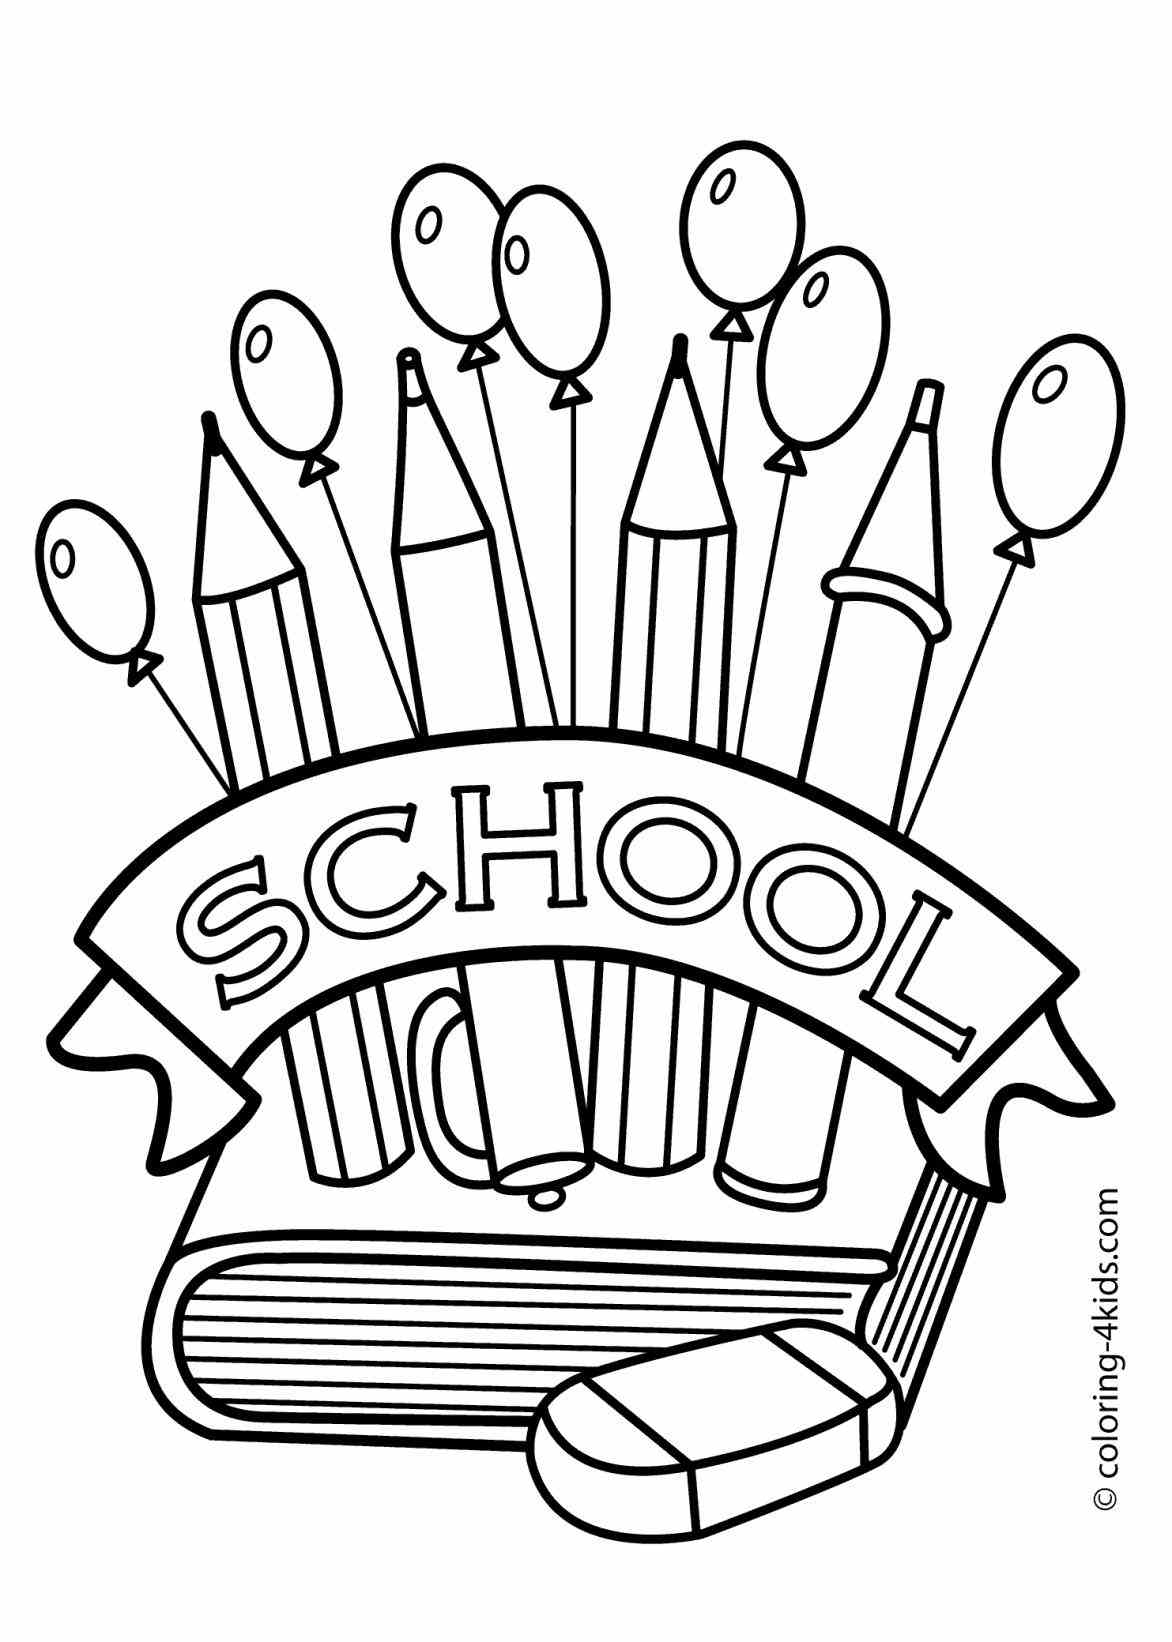 Art Supplies Coloring Pages